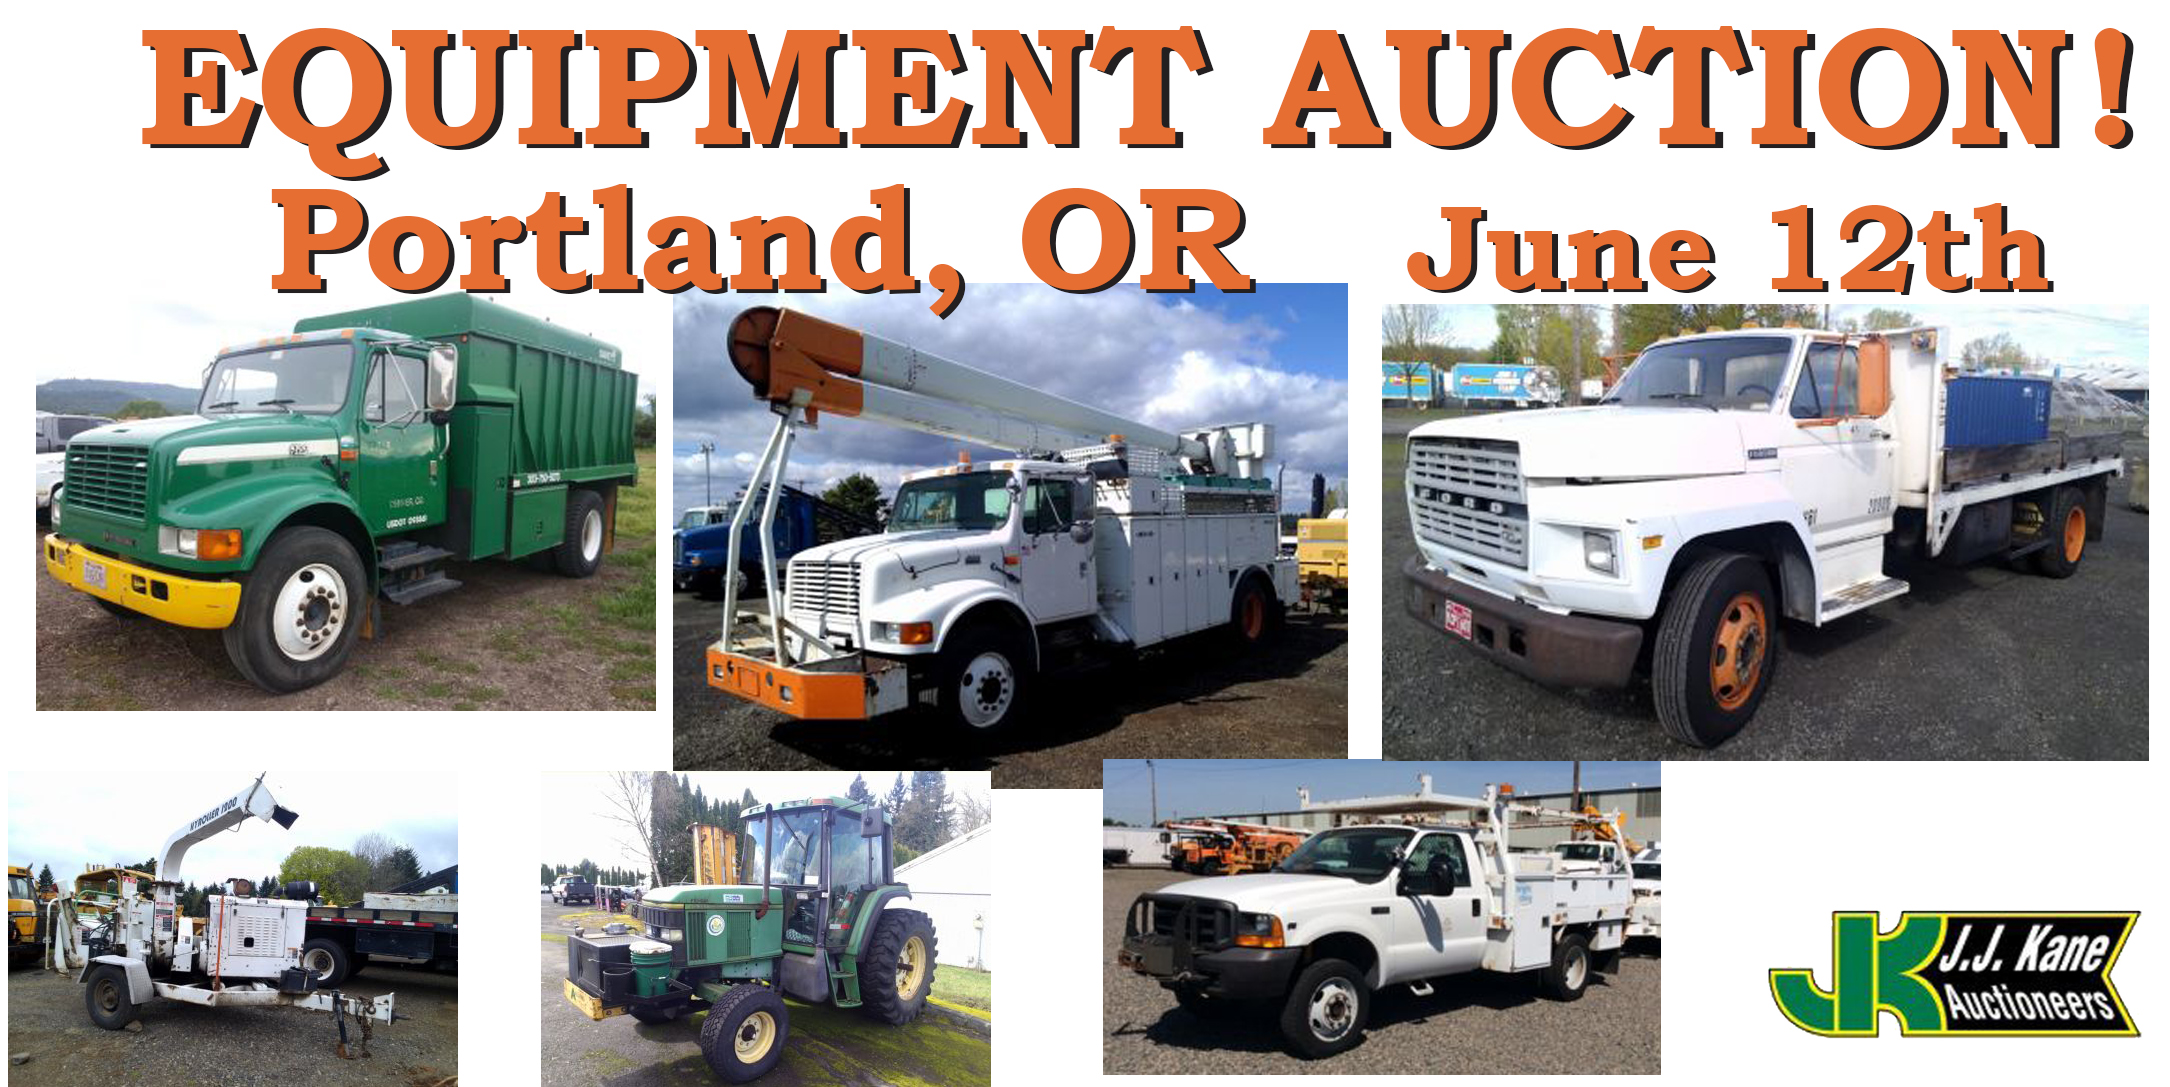 portland or large equipment auction june 12th 2014 city of portland and others will sell. Black Bedroom Furniture Sets. Home Design Ideas